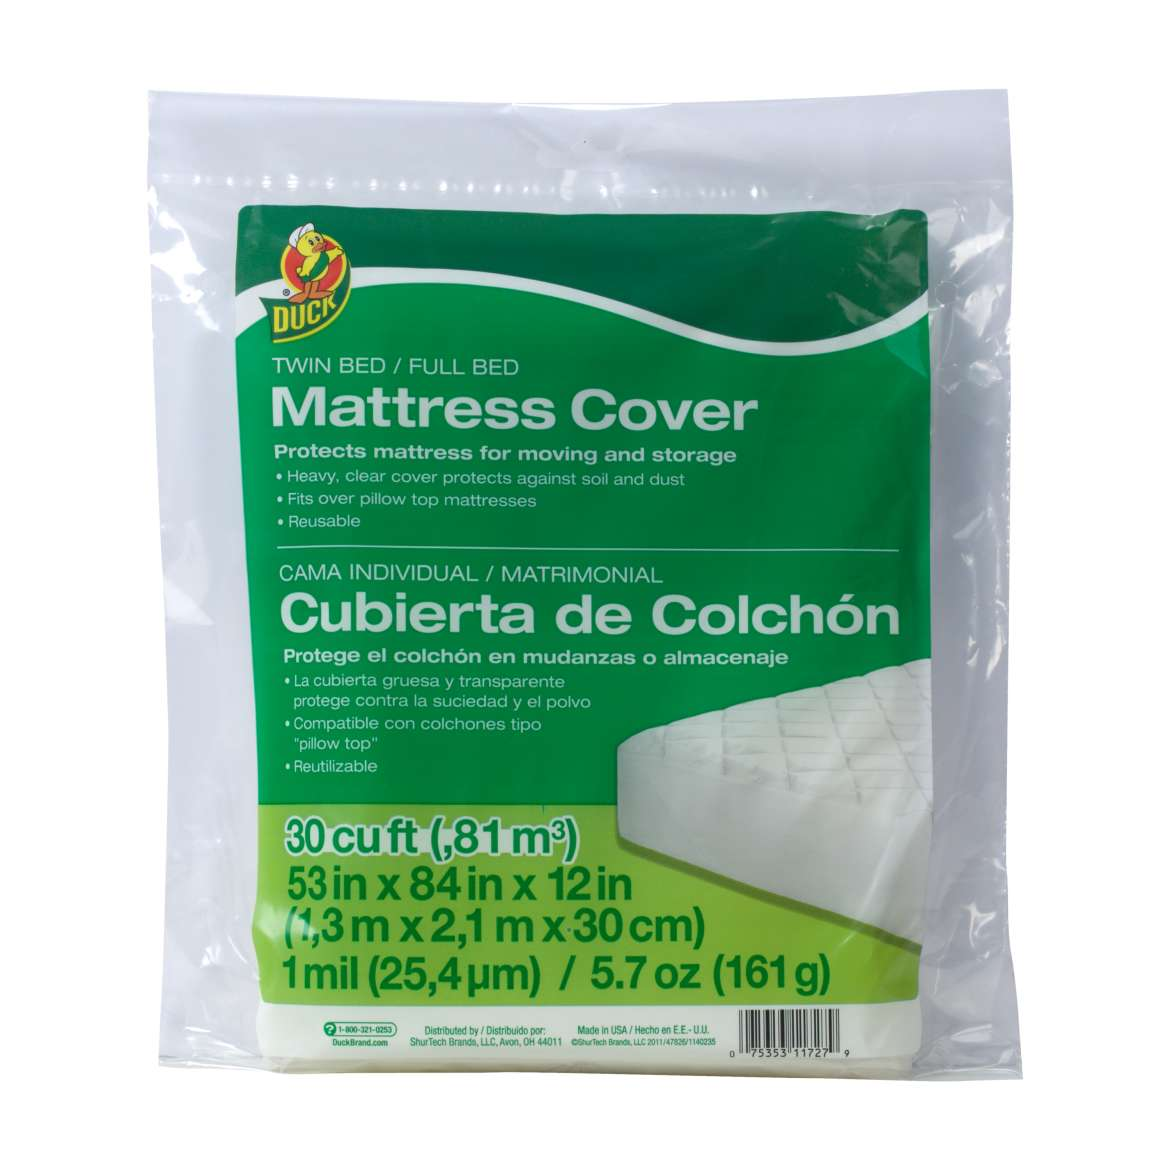 Twin/Full Bed Mattress Cover Image